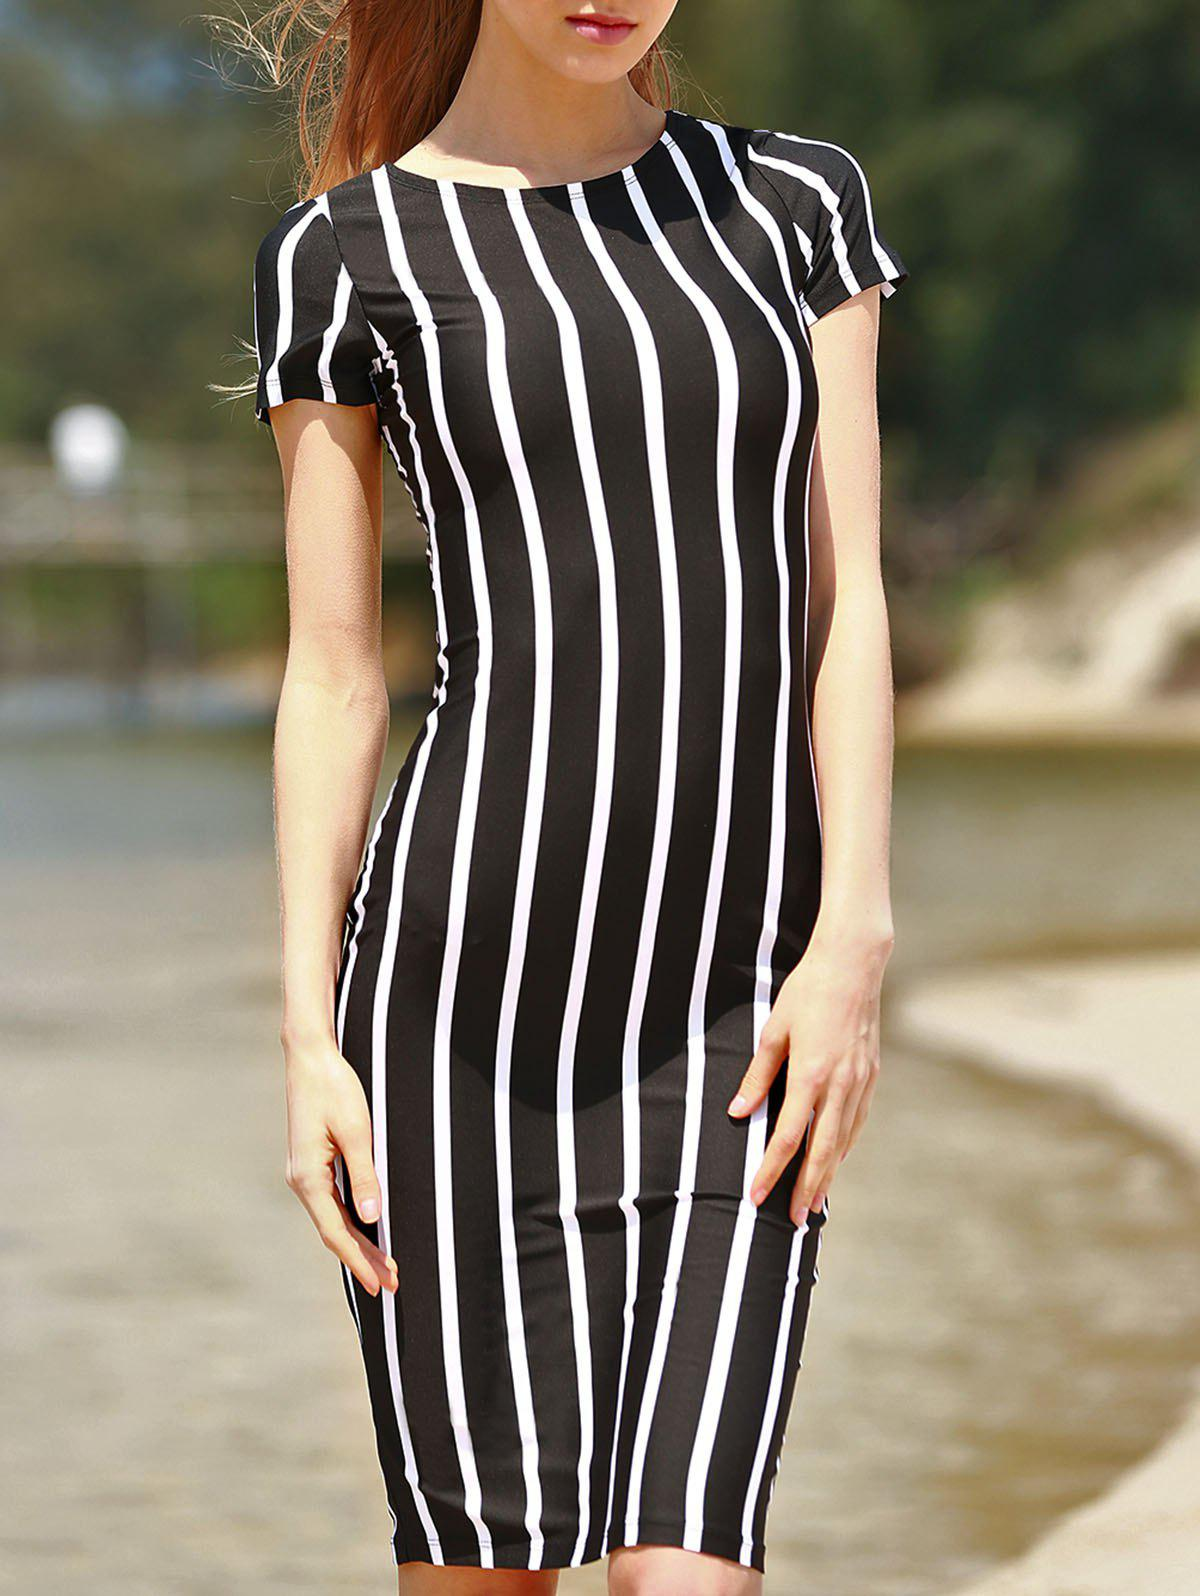 Stylish Round Neck Short Sleeve Striped Slimming Women's Dress - BLACK S